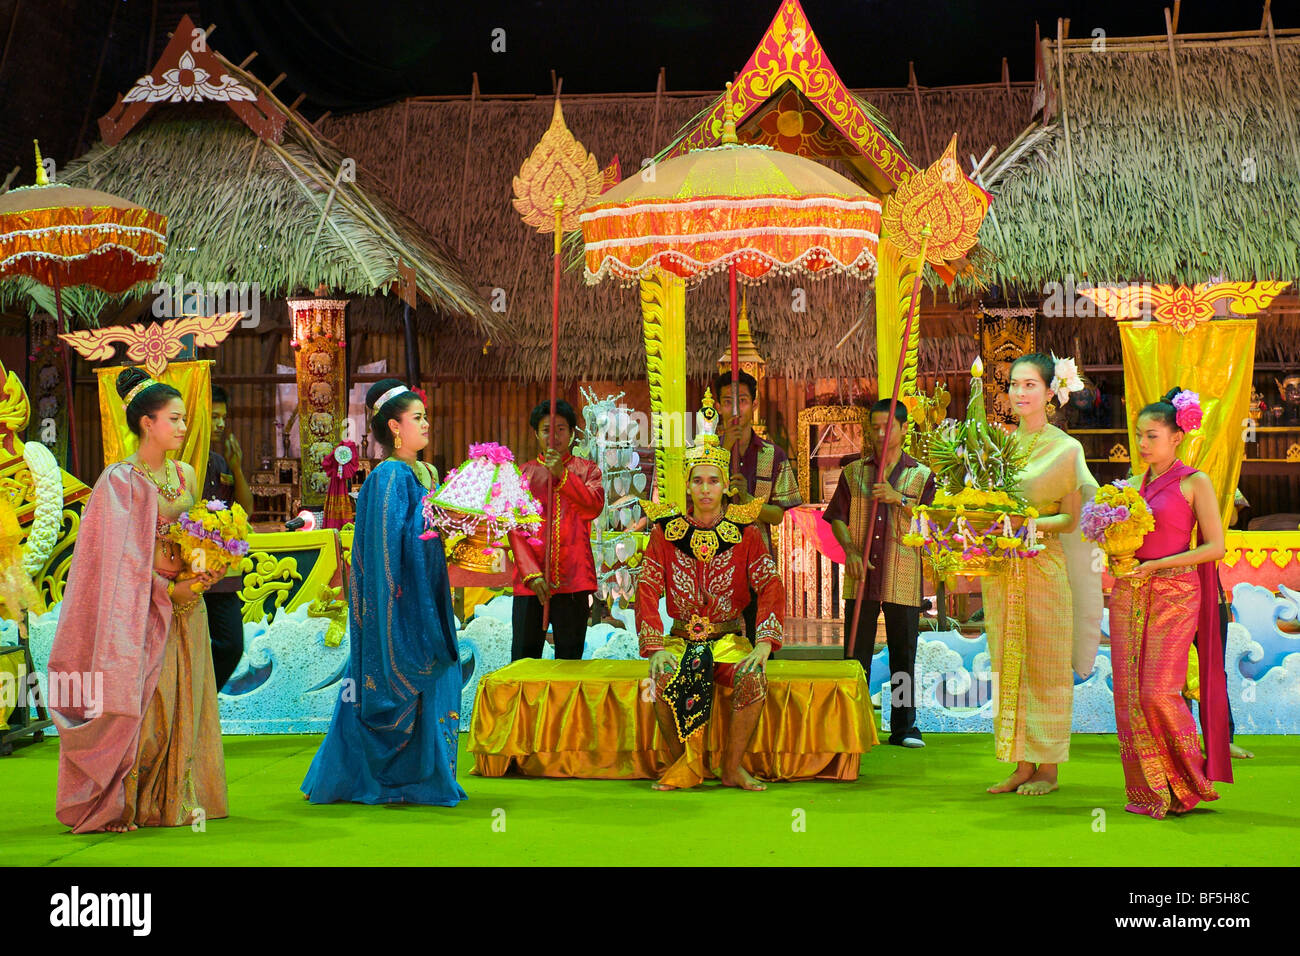 Dance show in Phuket Town, portrayal of a traditional wedding, Phuket Island, Thailand, Asia - Stock Image